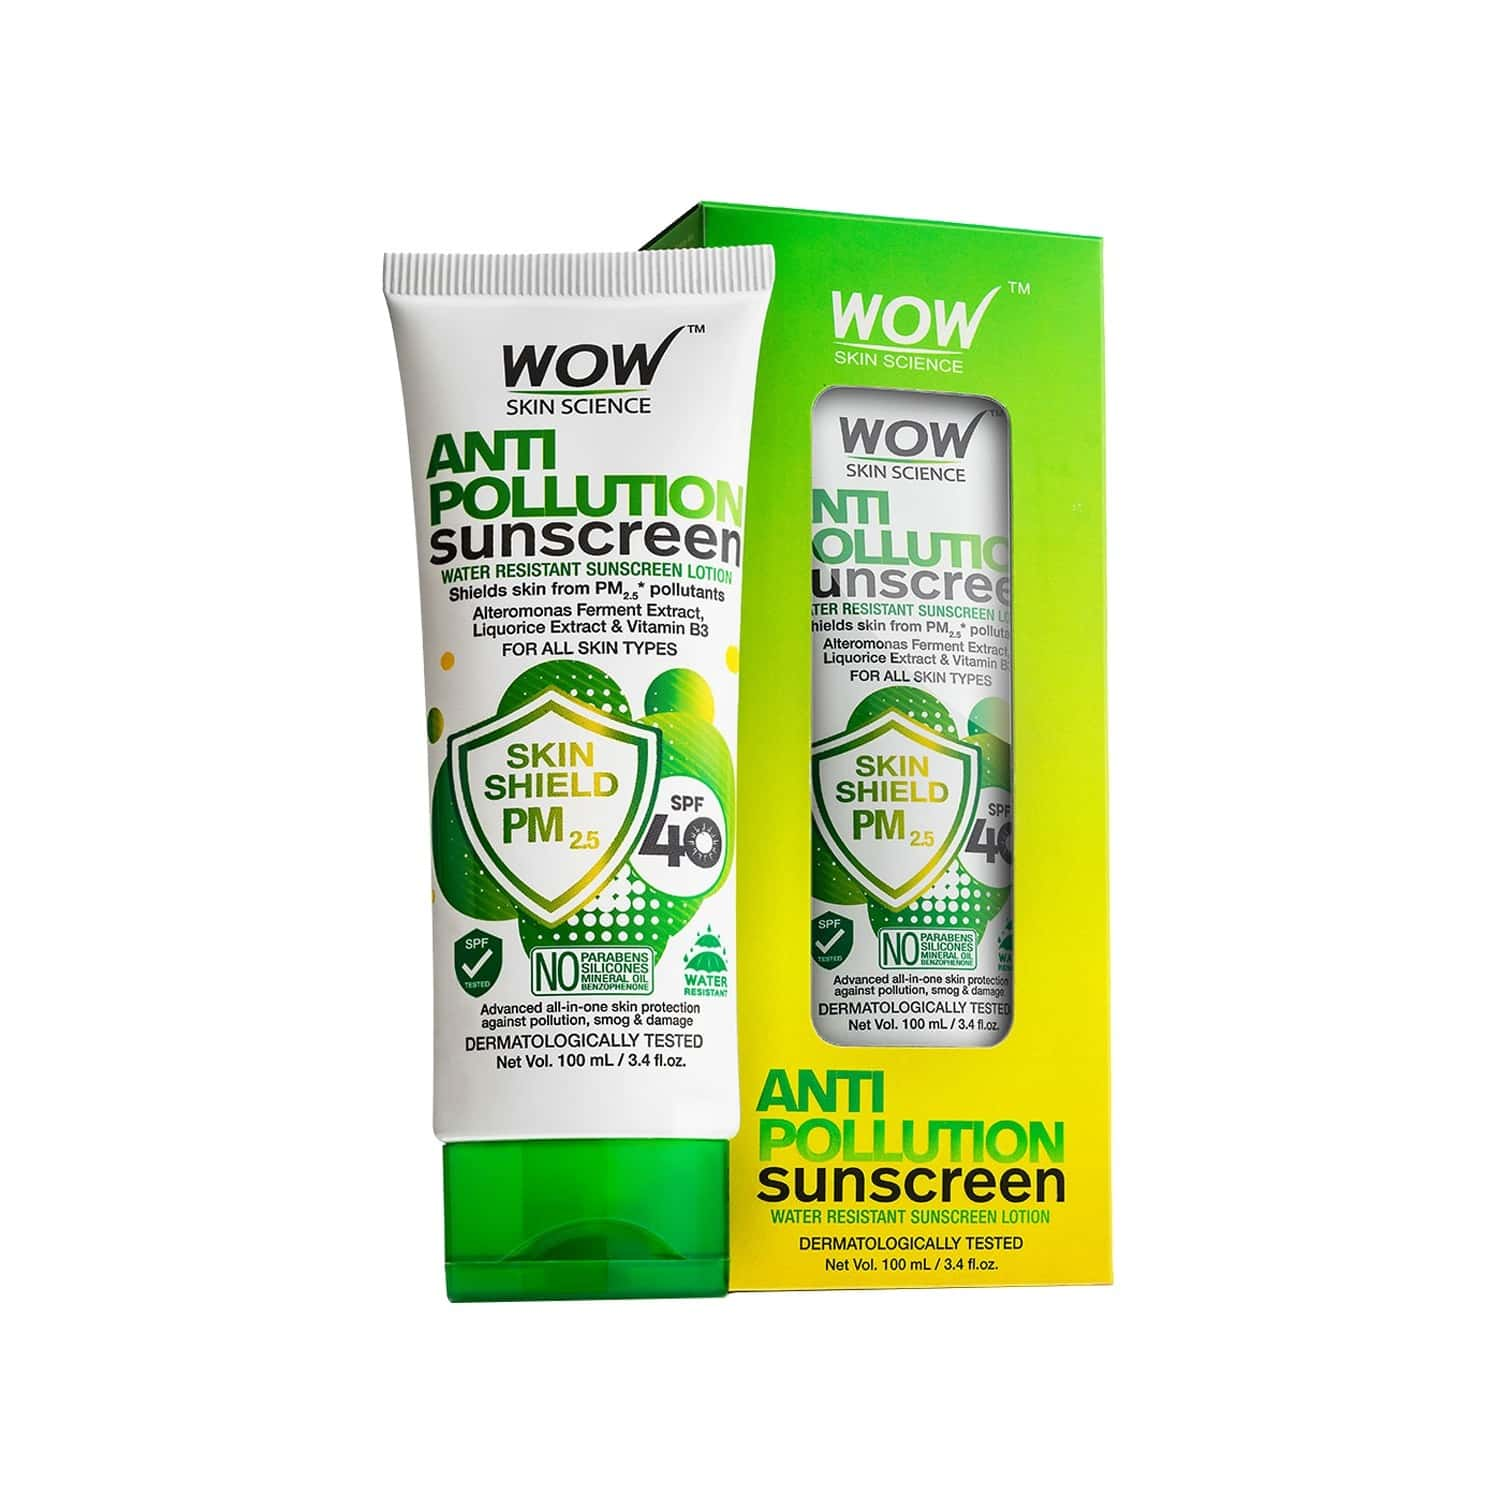 Wow Skin Science Anti Pollution Sunscreen Lotion - 100 Ml Tube